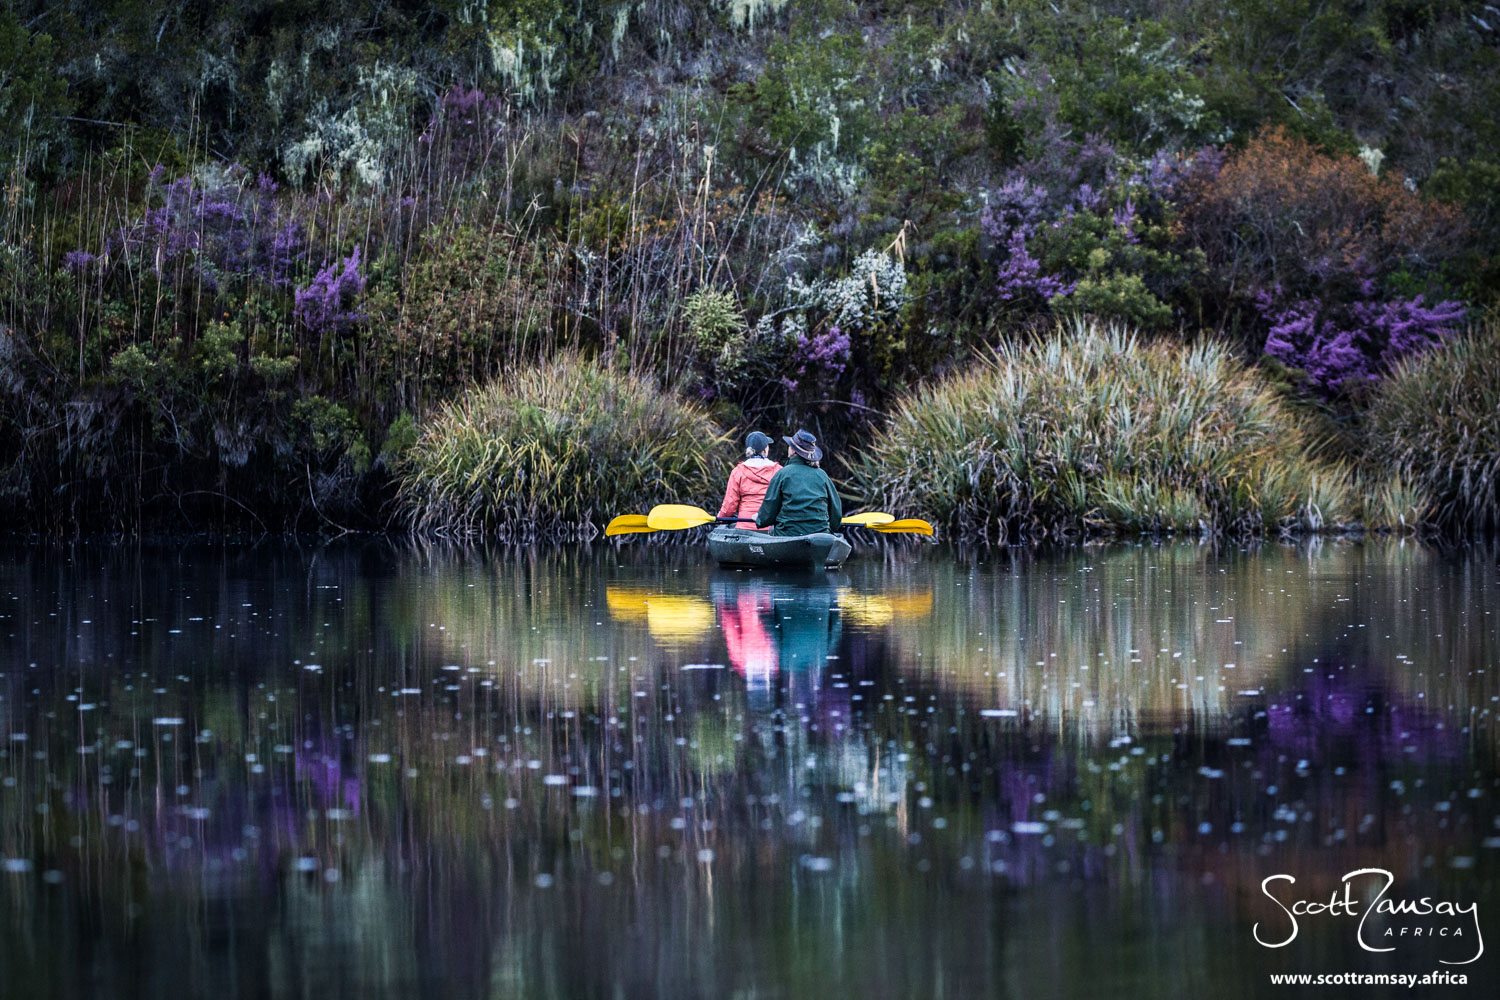 My friends Michelle and Helen floating silently on the river's still waters, early one winter morning. Look at the colour tones of the fynbos on the banks!